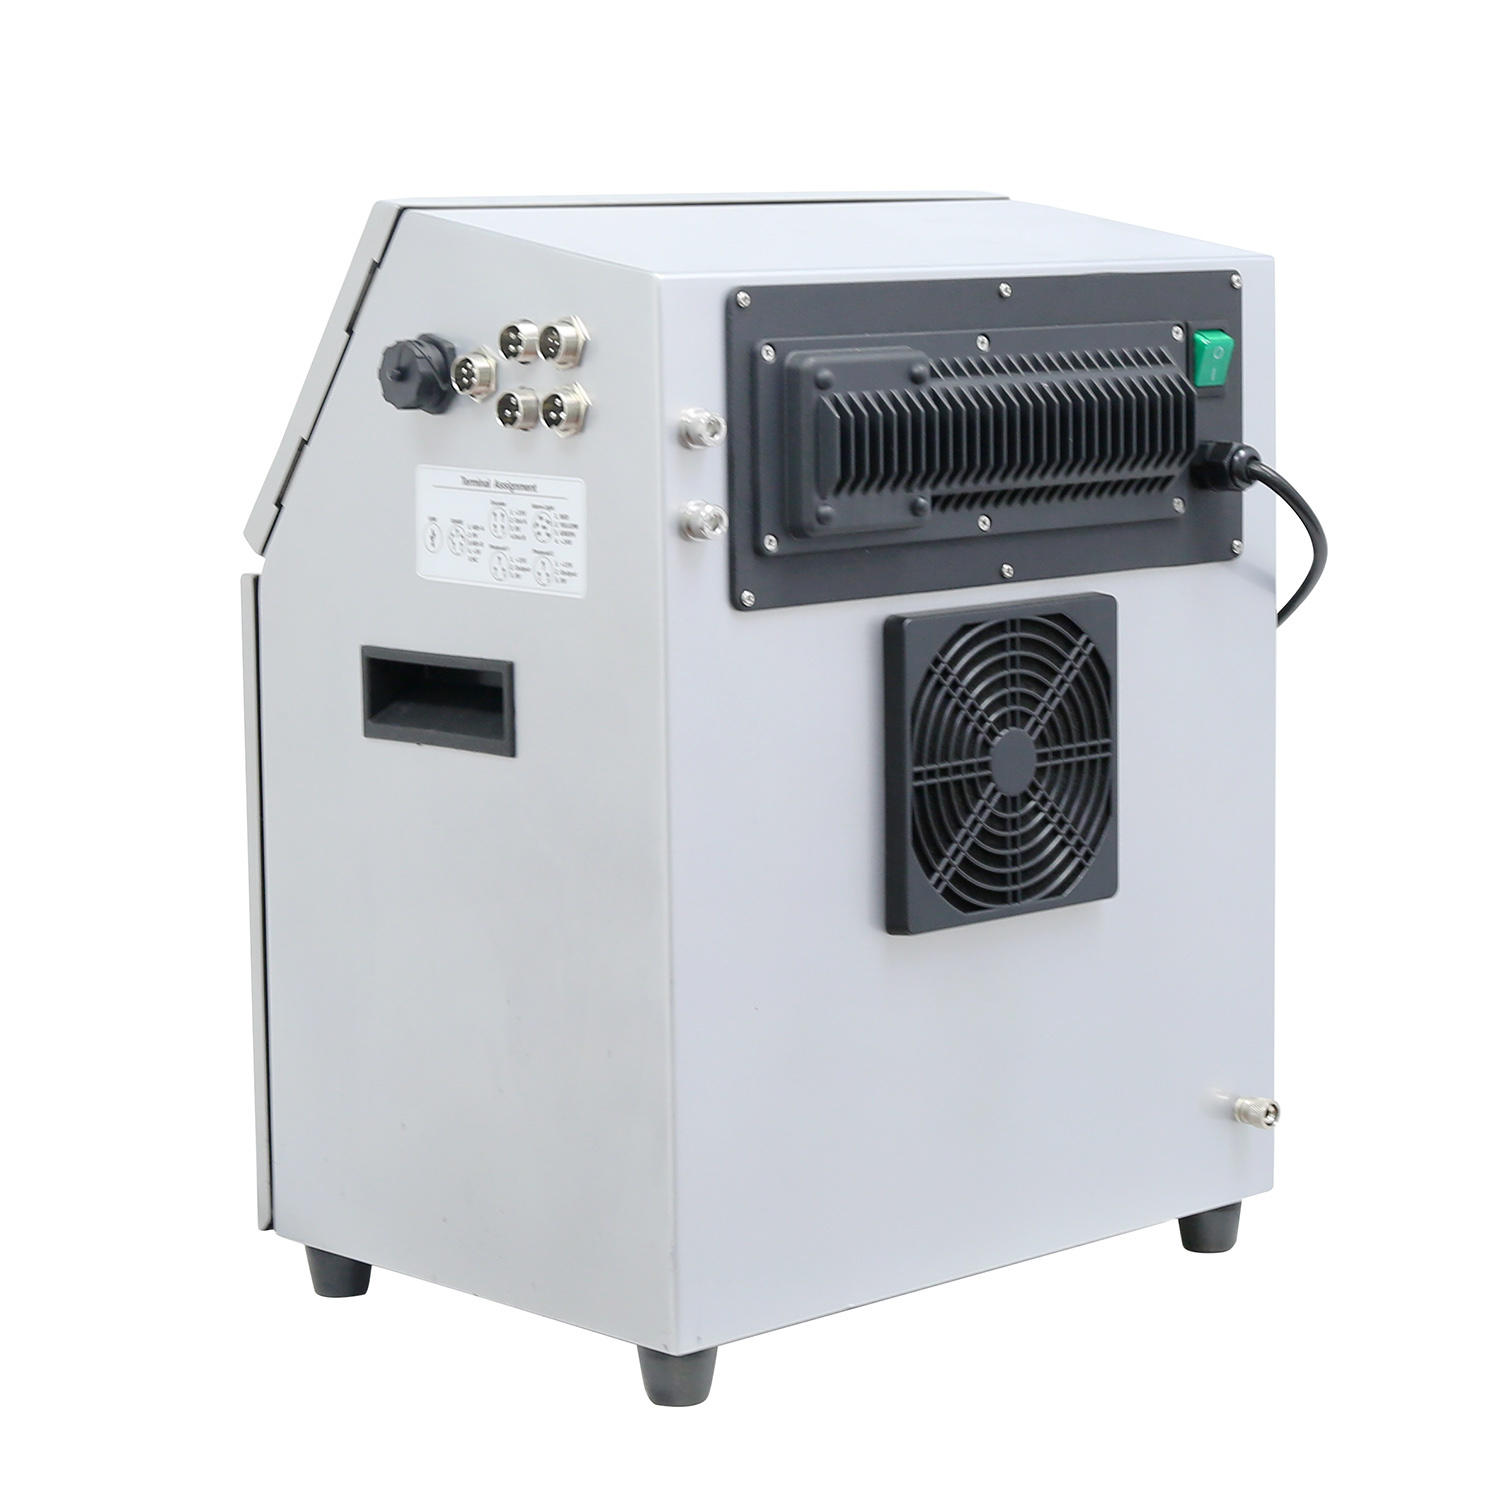 Lead Tech Lt800 Color Printing Machine Inkjet Printer